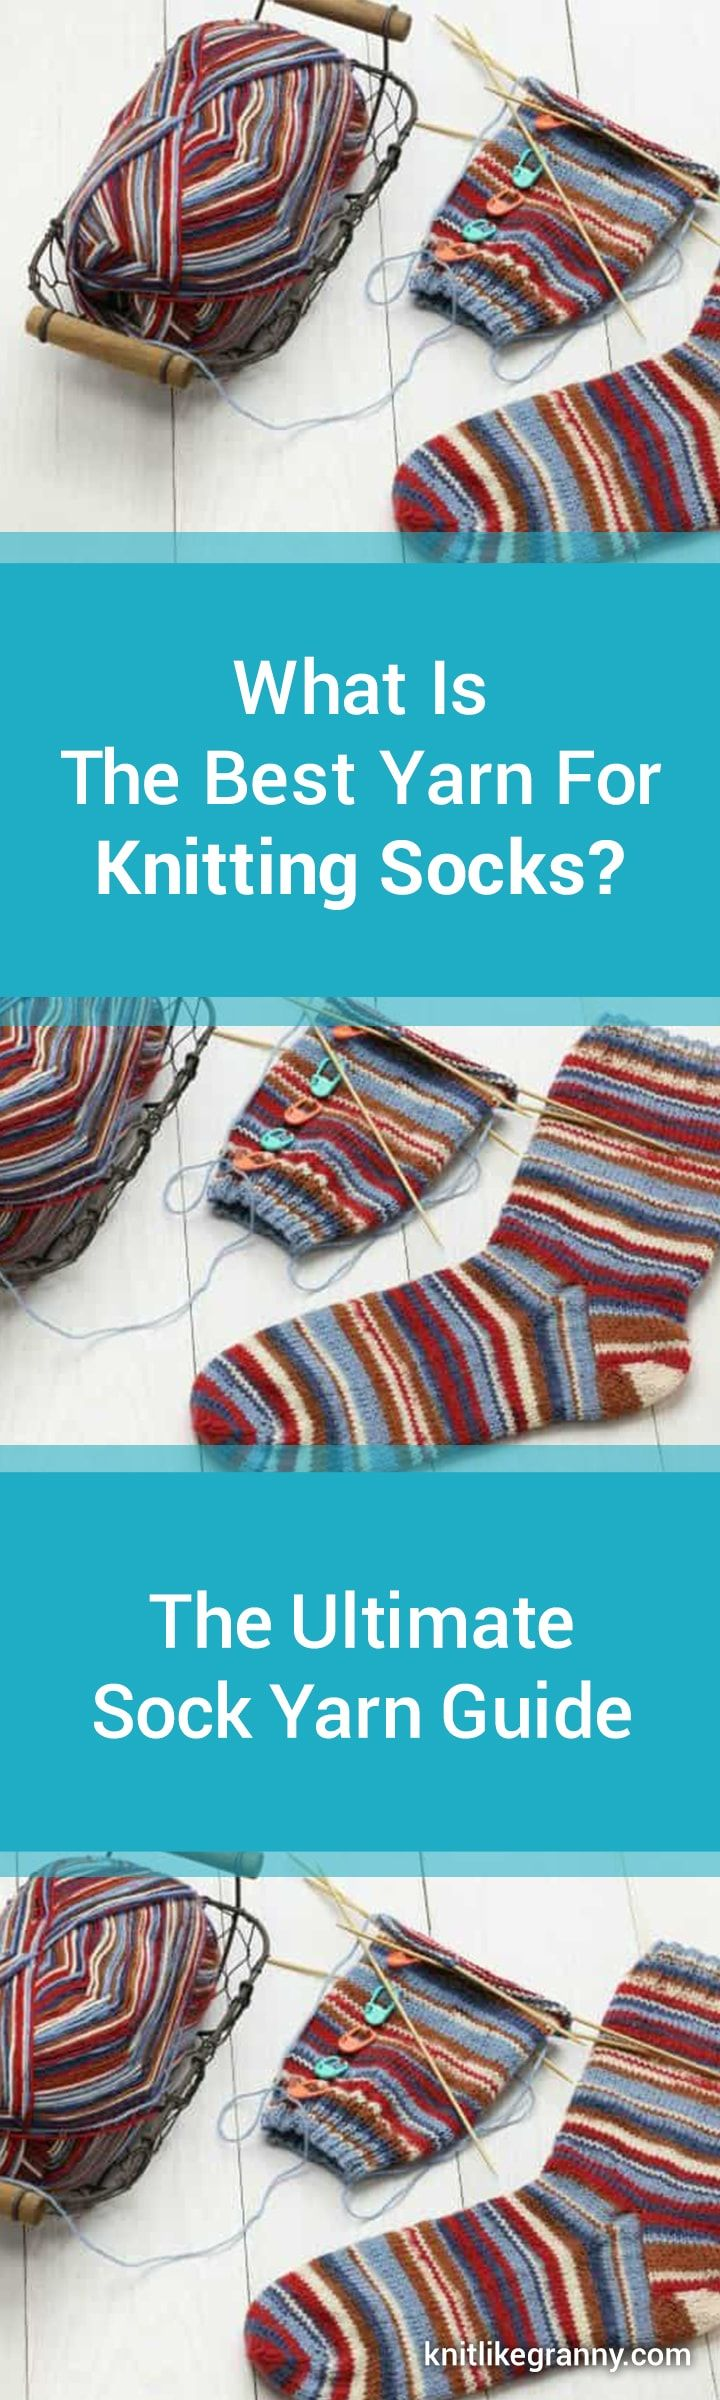 What Is The Best Yarn For Knitting Socks? The Ultimate Sock Yarn Guide Updated For 2017 What is Sock Yarn? Sock Yarn is not just for socks! Other items can be knitted with sock yarn such as shawls and scarves. What to consider in the best sock yarn - Read our tips What Is the Best Sock Yarn? - Find out more What are popular yarn blends for knitting socks? What is the best self striping yarn? Got to love all those colors! What is the best worsted weight sock yarn? Best sock yarn review